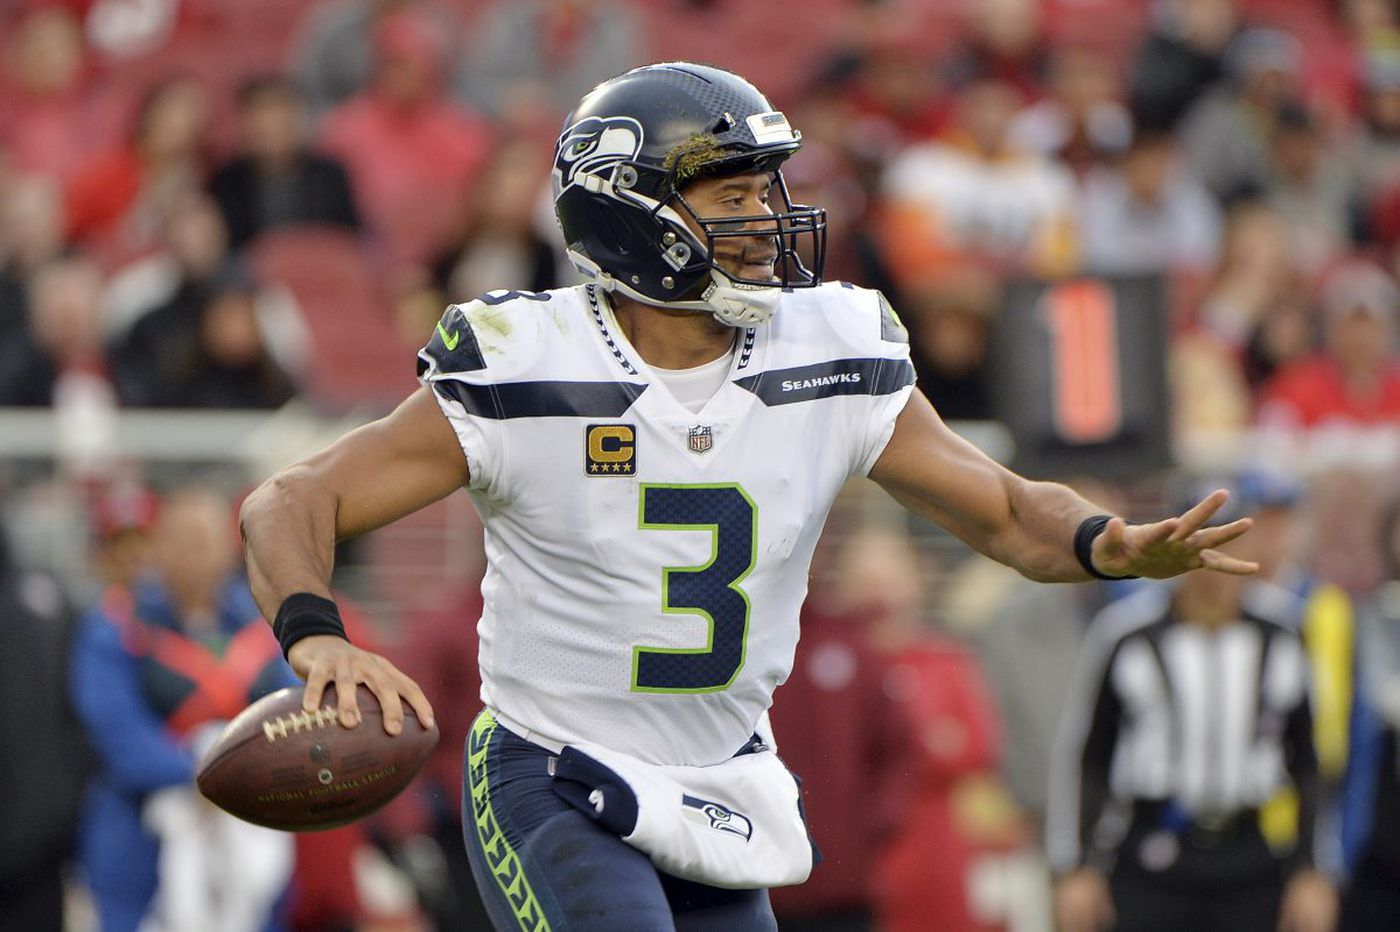 Eagles-Seahawks matchup pits fast-starting offense against strong-finishing Russell Wilson